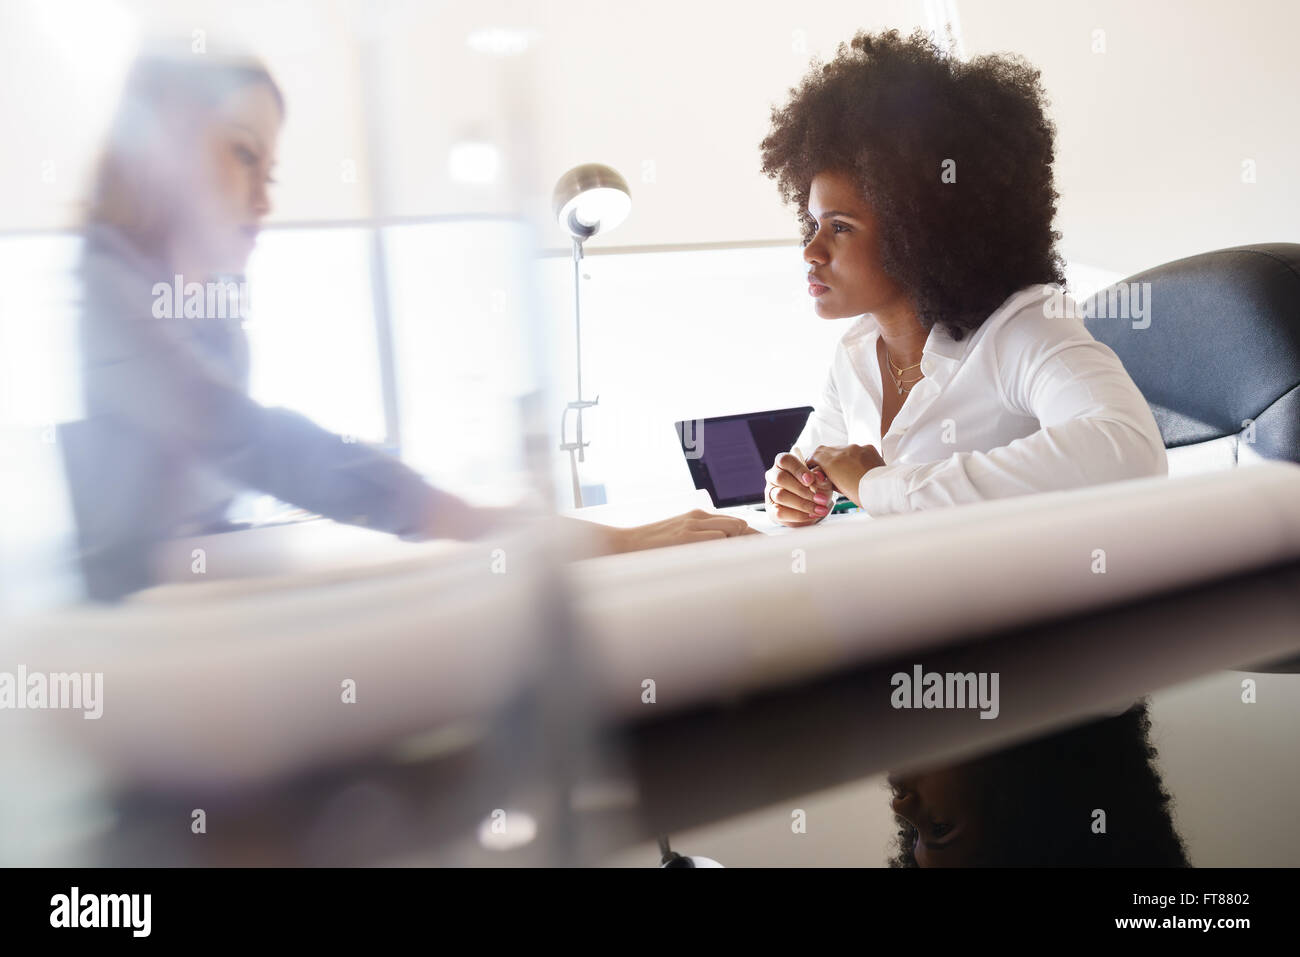 Team of two female architects, sitting at desk in office. The women talk reviewing a building plan. Medium shot - Stock Image